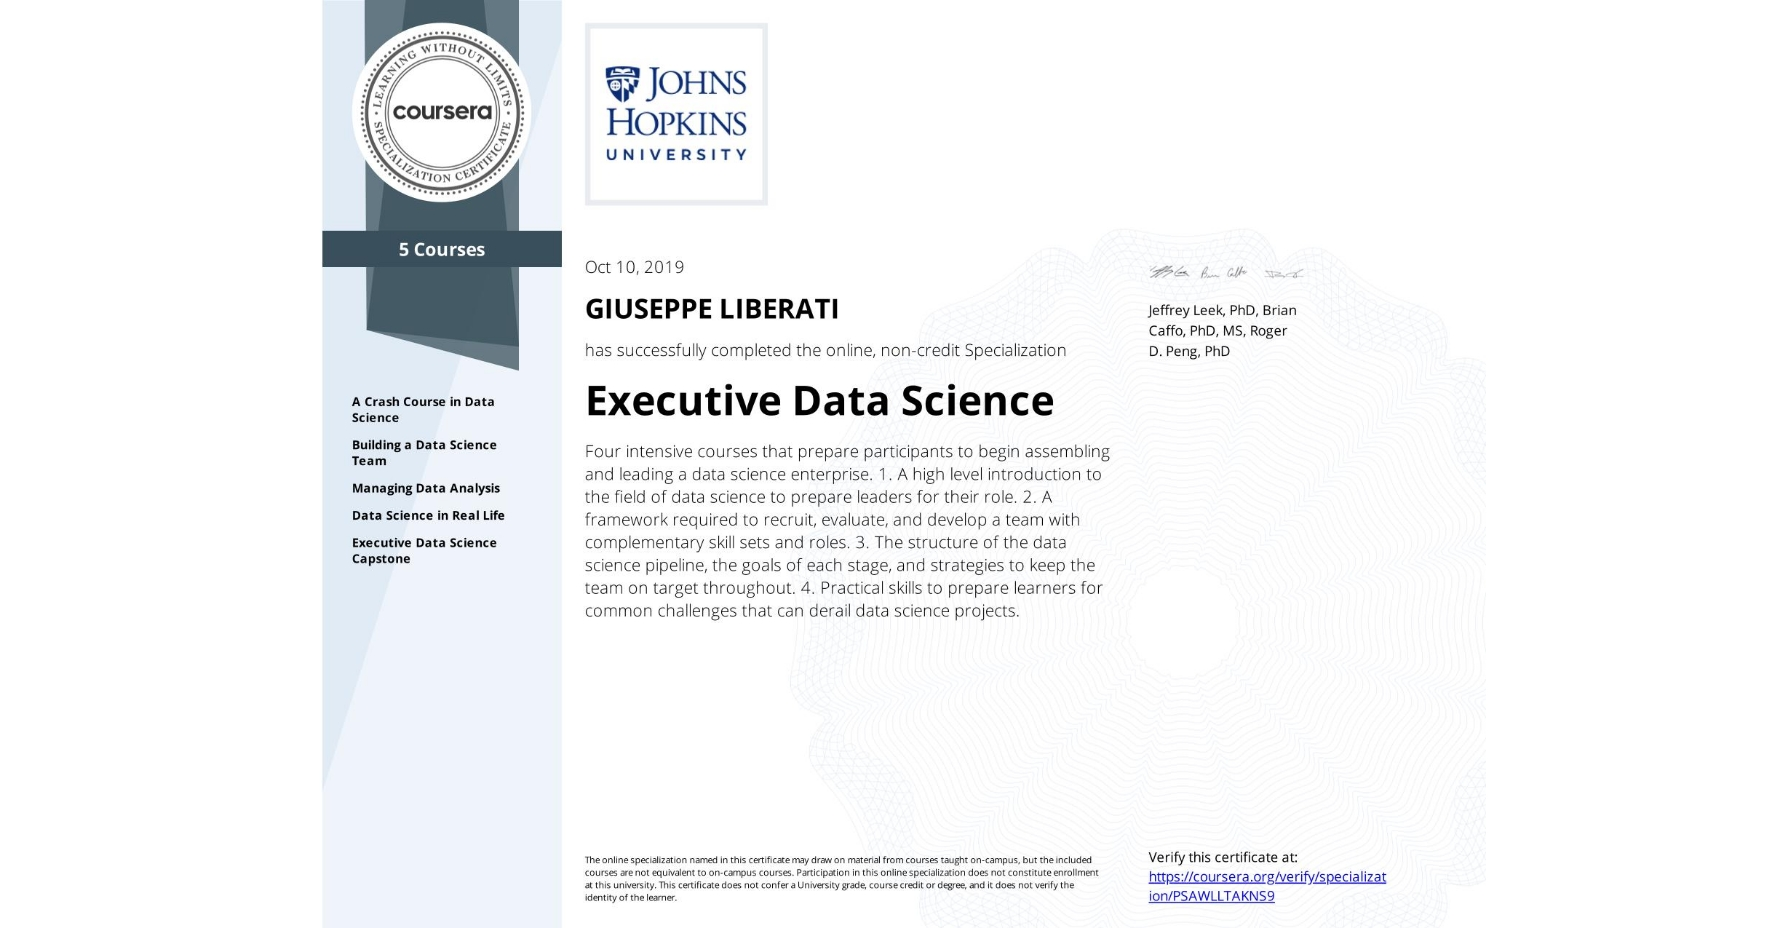 View certificate for GIUSEPPE LIBERATI, Executive Data Science, offered through Coursera. Four intensive courses that prepare participants to begin assembling and leading a data science enterprise.    1. A high level introduction to the field of data science to prepare leaders for their role. 2. A framework required to recruit, evaluate, and develop a team with complementary skill sets and roles. 3. The structure of the data science pipeline, the goals of each stage, and strategies to keep the team on target throughout. 4. Practical skills to prepare learners for common challenges that can derail data science projects.